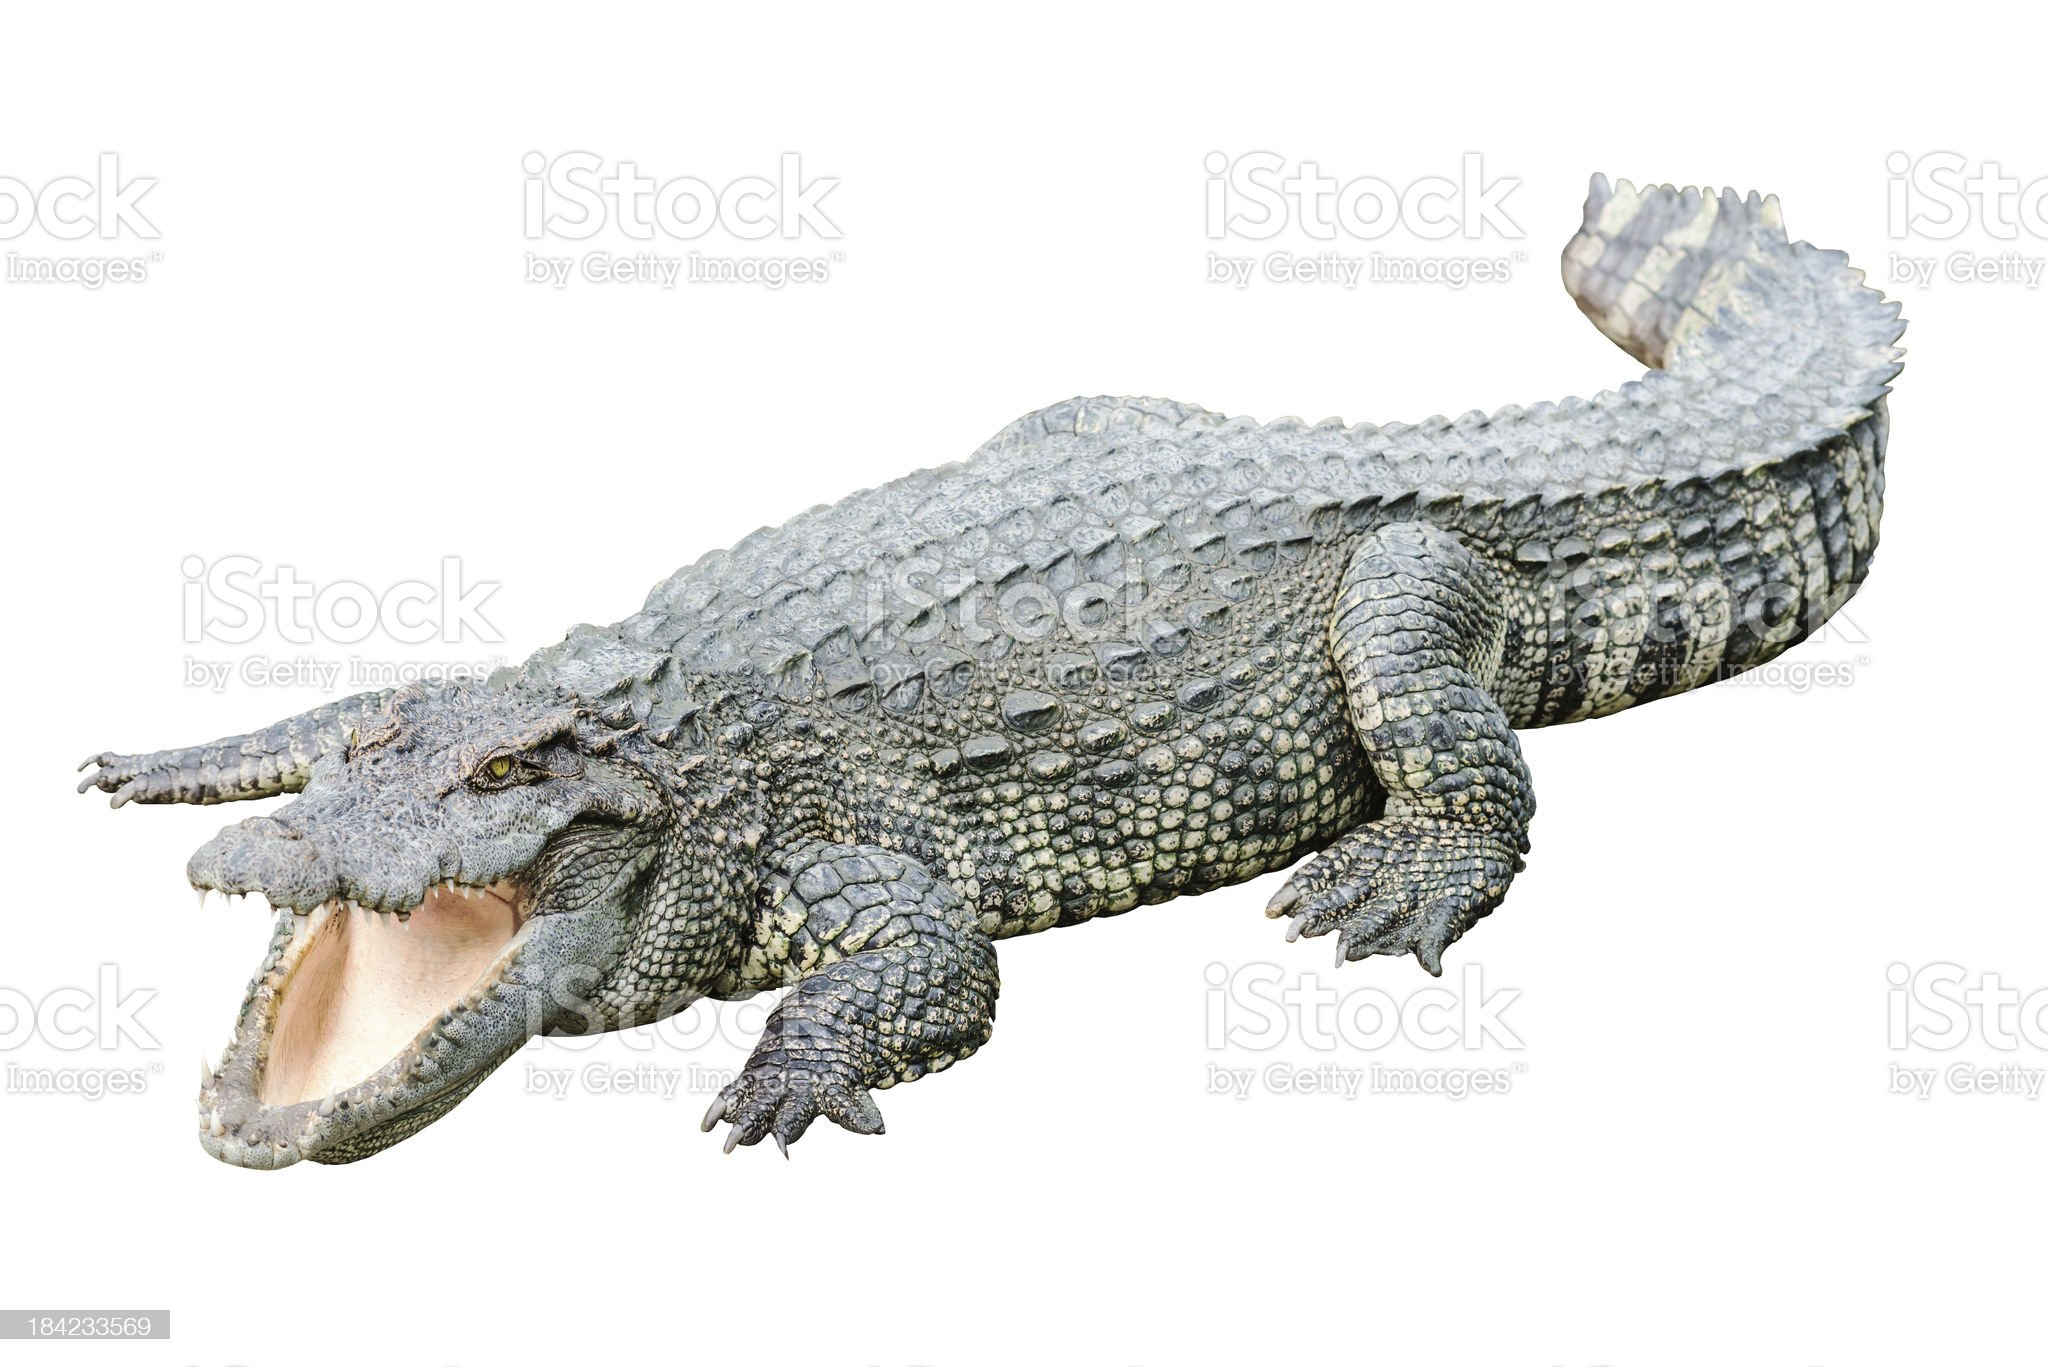 Fresh water adult crocodile from Thailand royalty-free stock photo